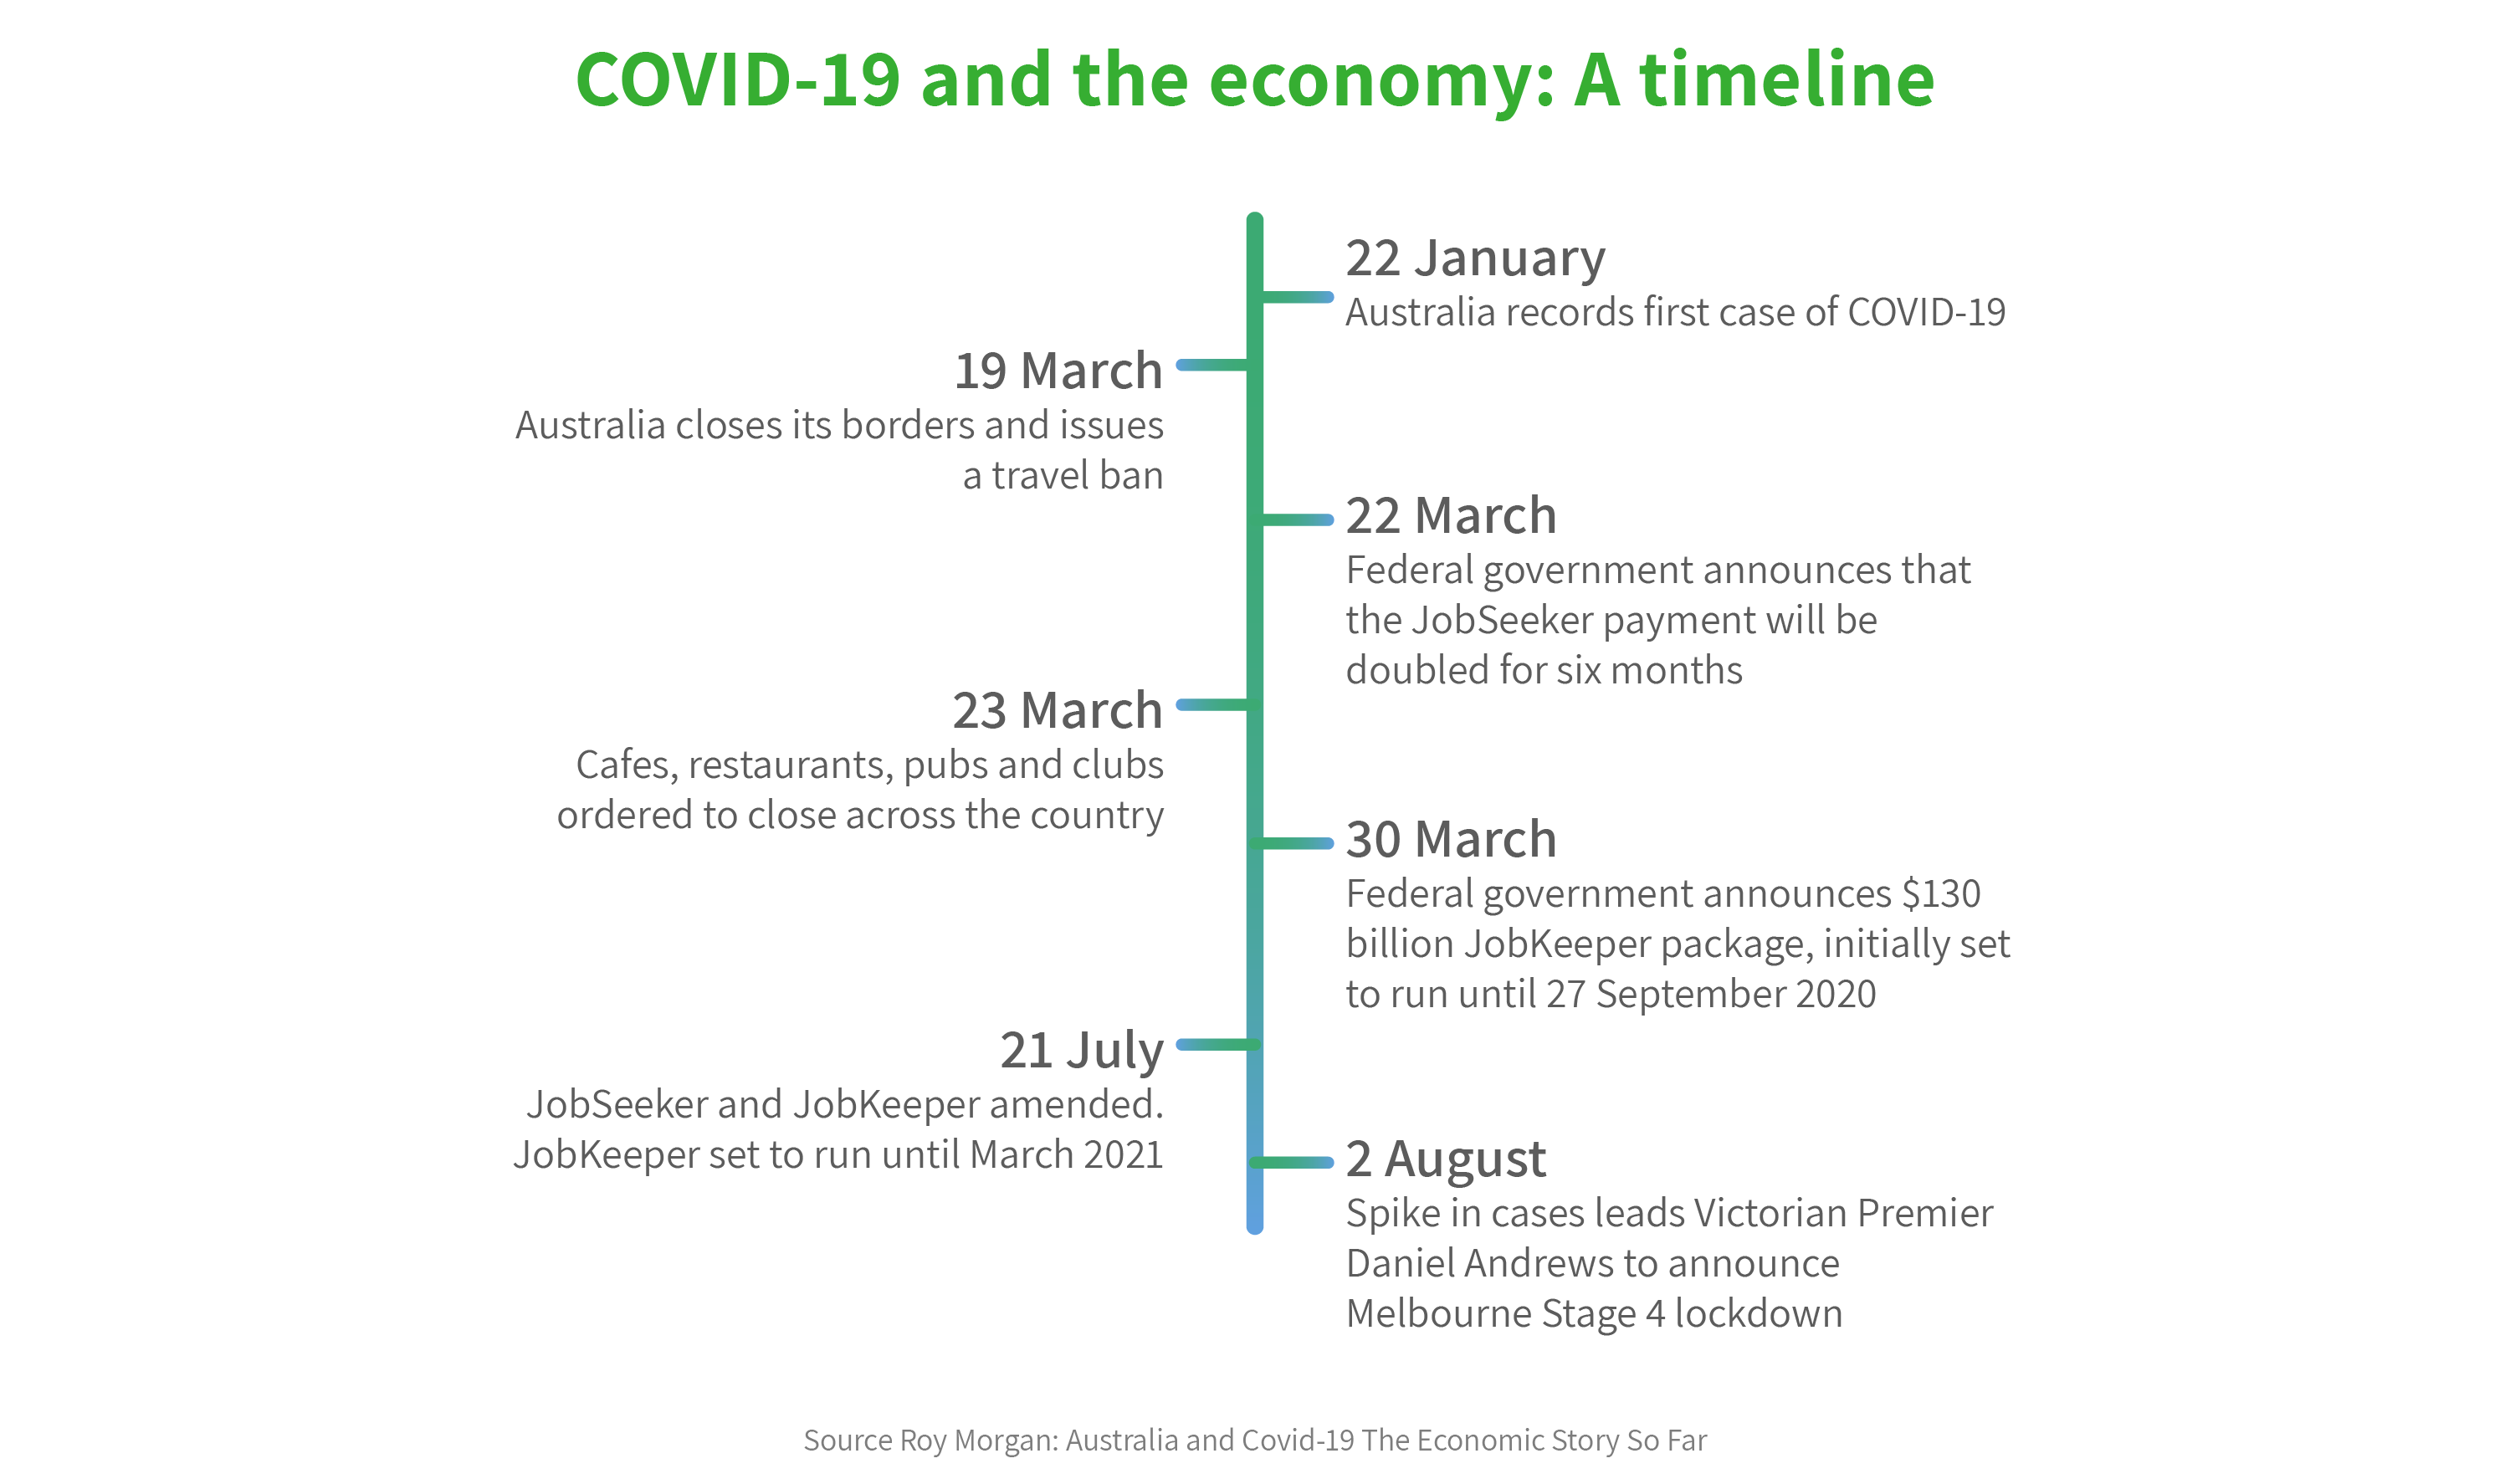 Timeline of events relating to Covid-19 and the economy